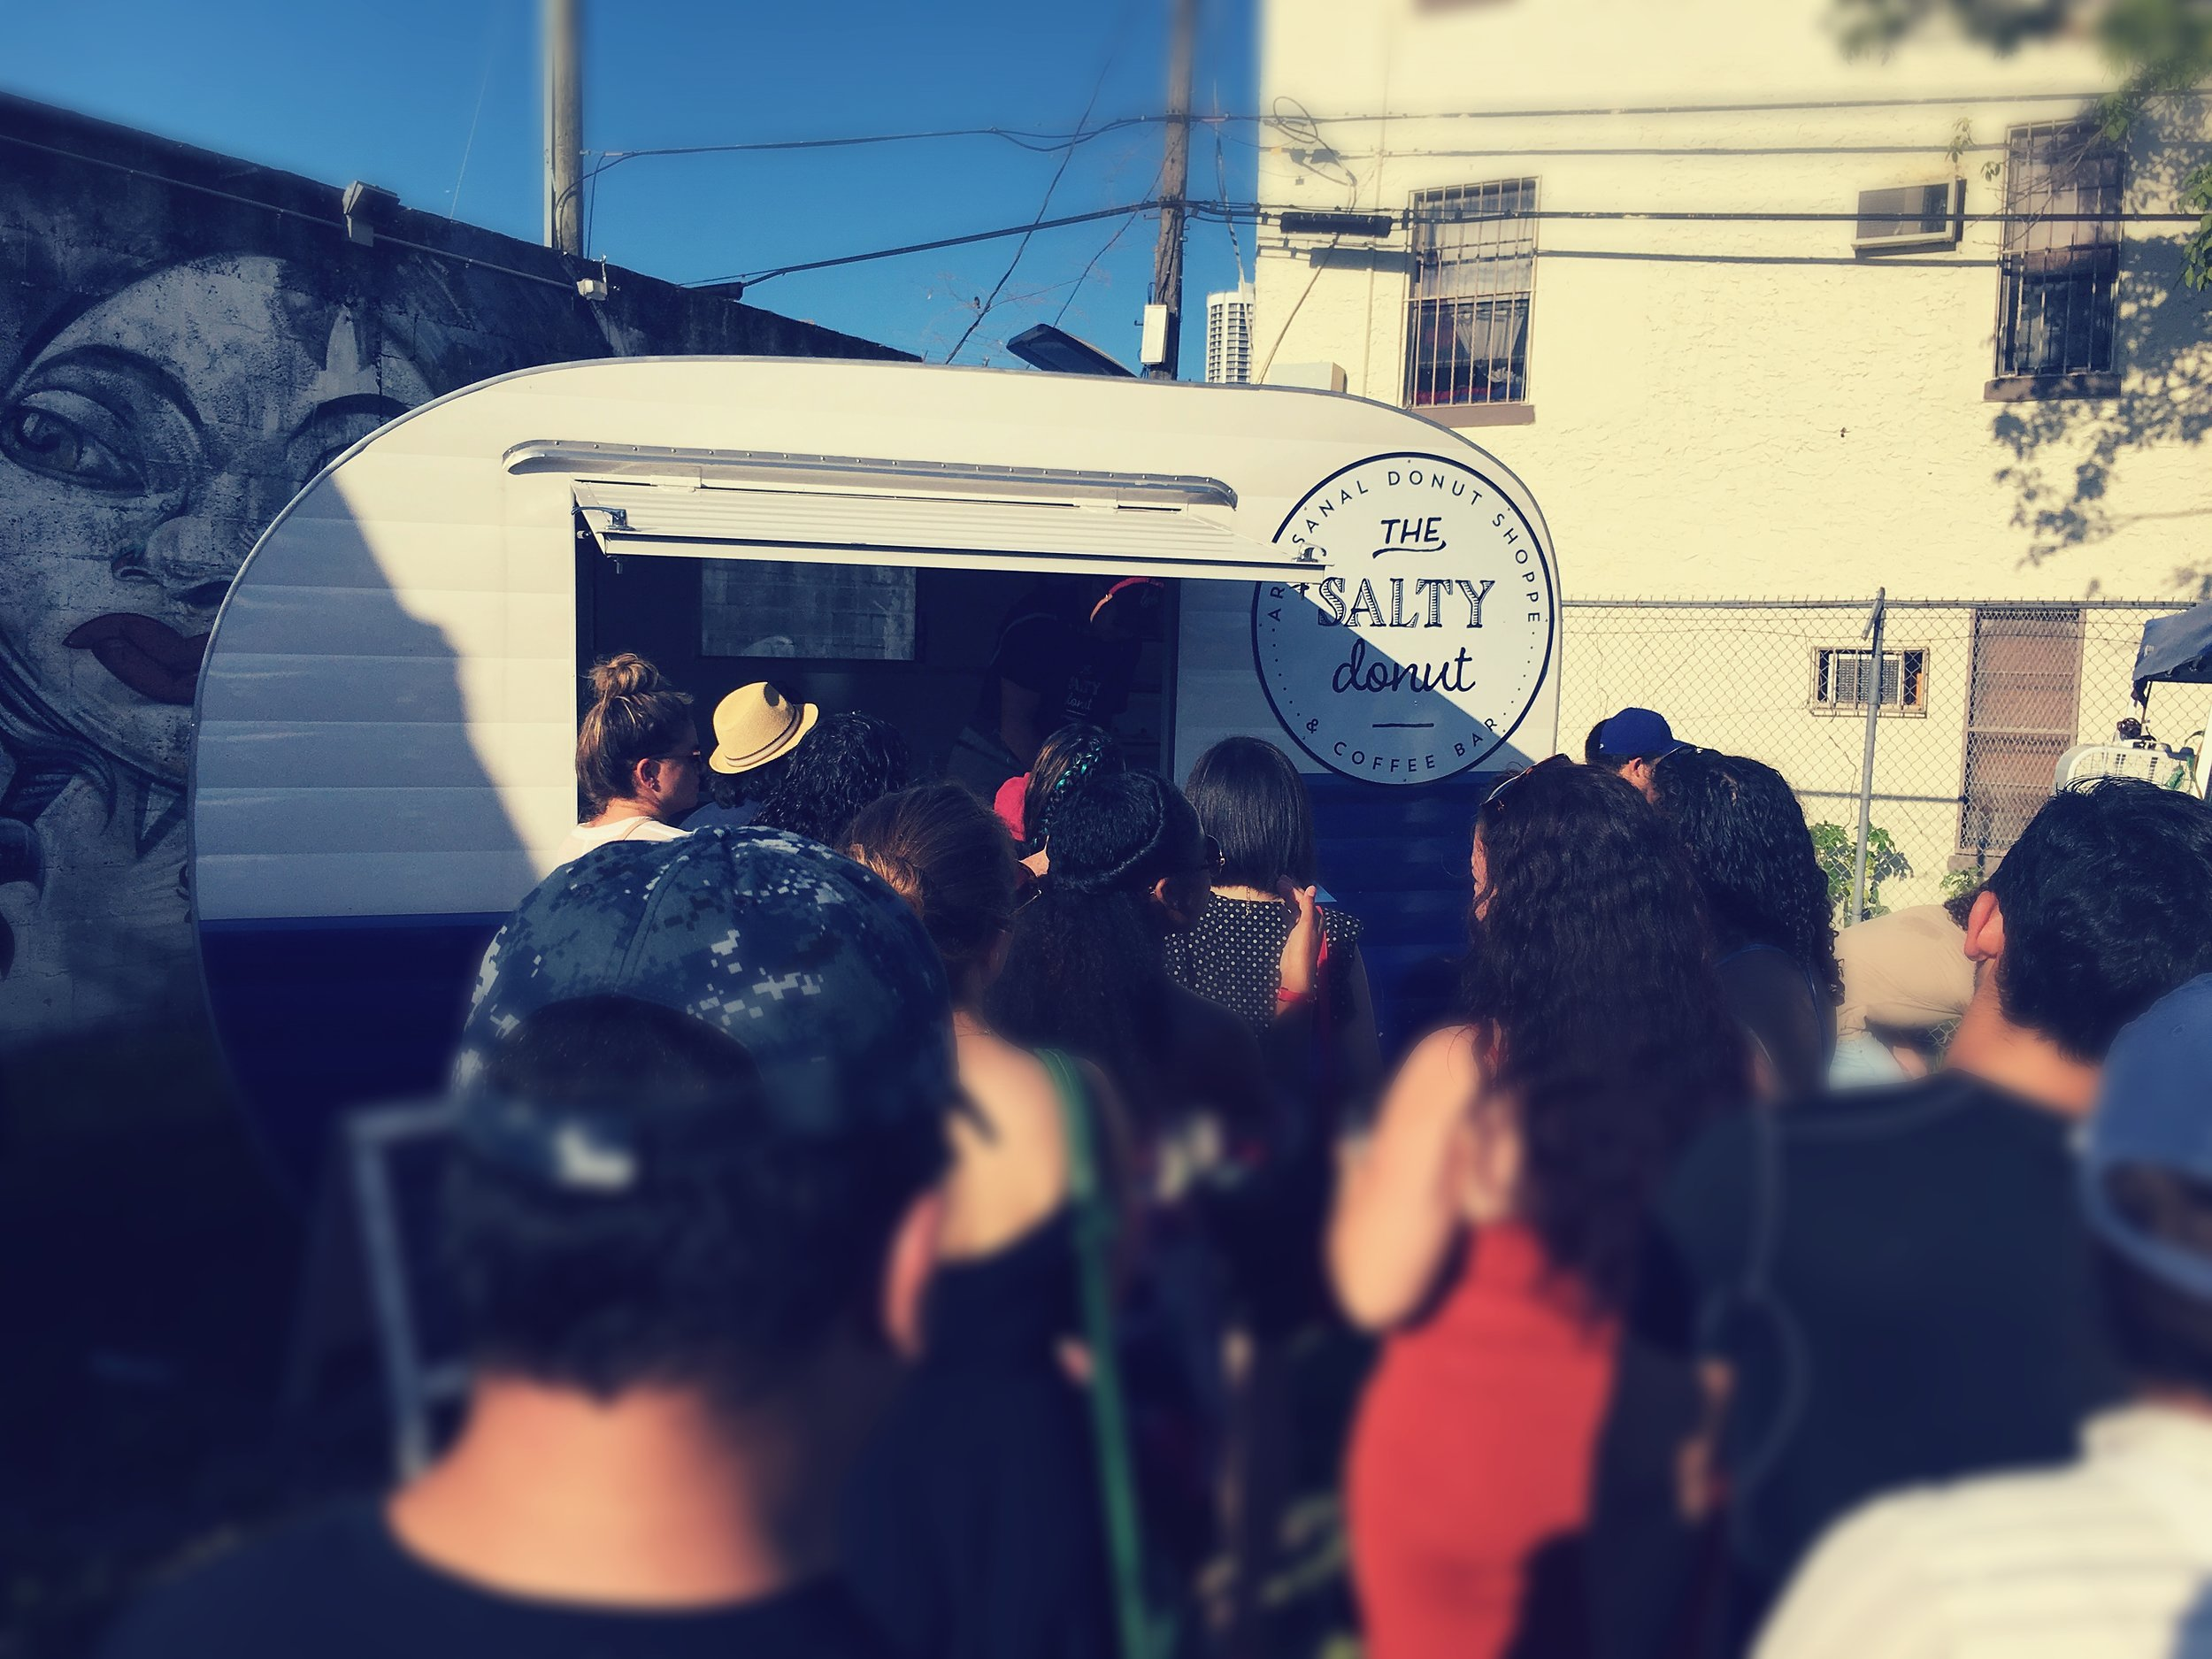 Long Queue At The Salty Donut